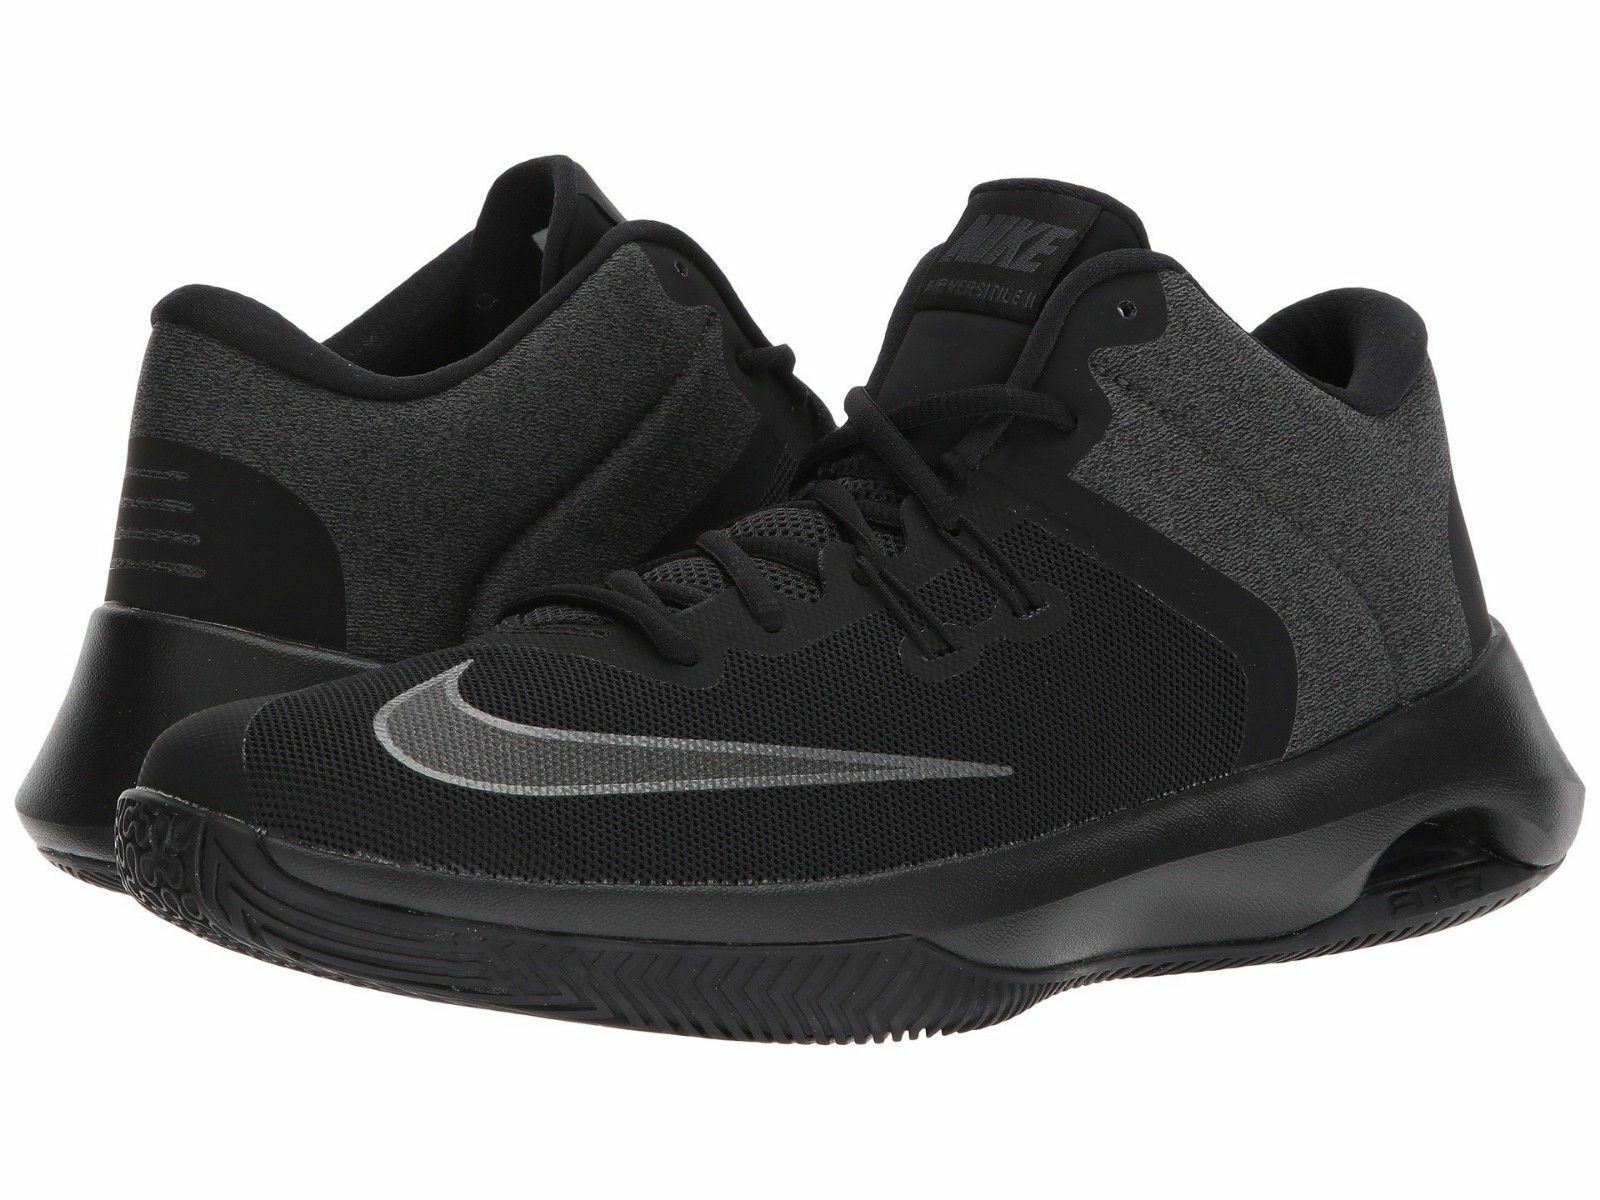 NIKE AIR VERSITILE II NBK LOW SNEAKERS MEN SHOES BLACK AA3819-002 SIZE 11 NEW